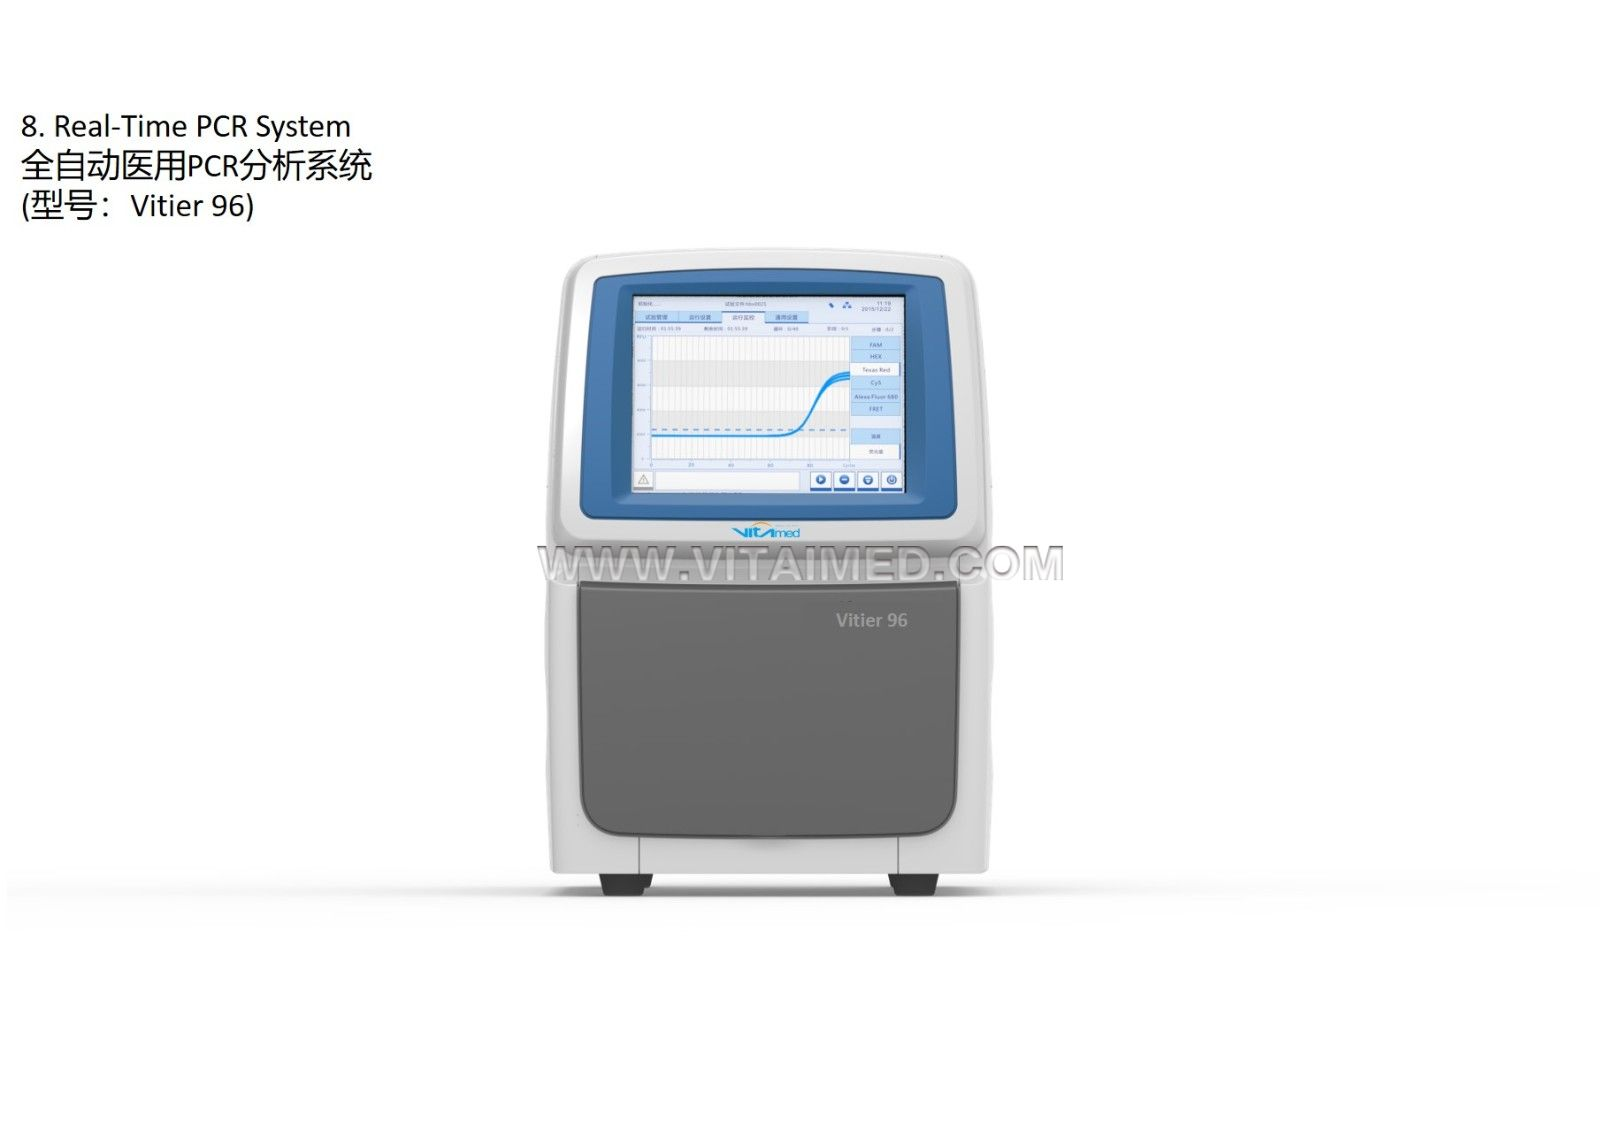 Real-Time PCR System-Vitier 96